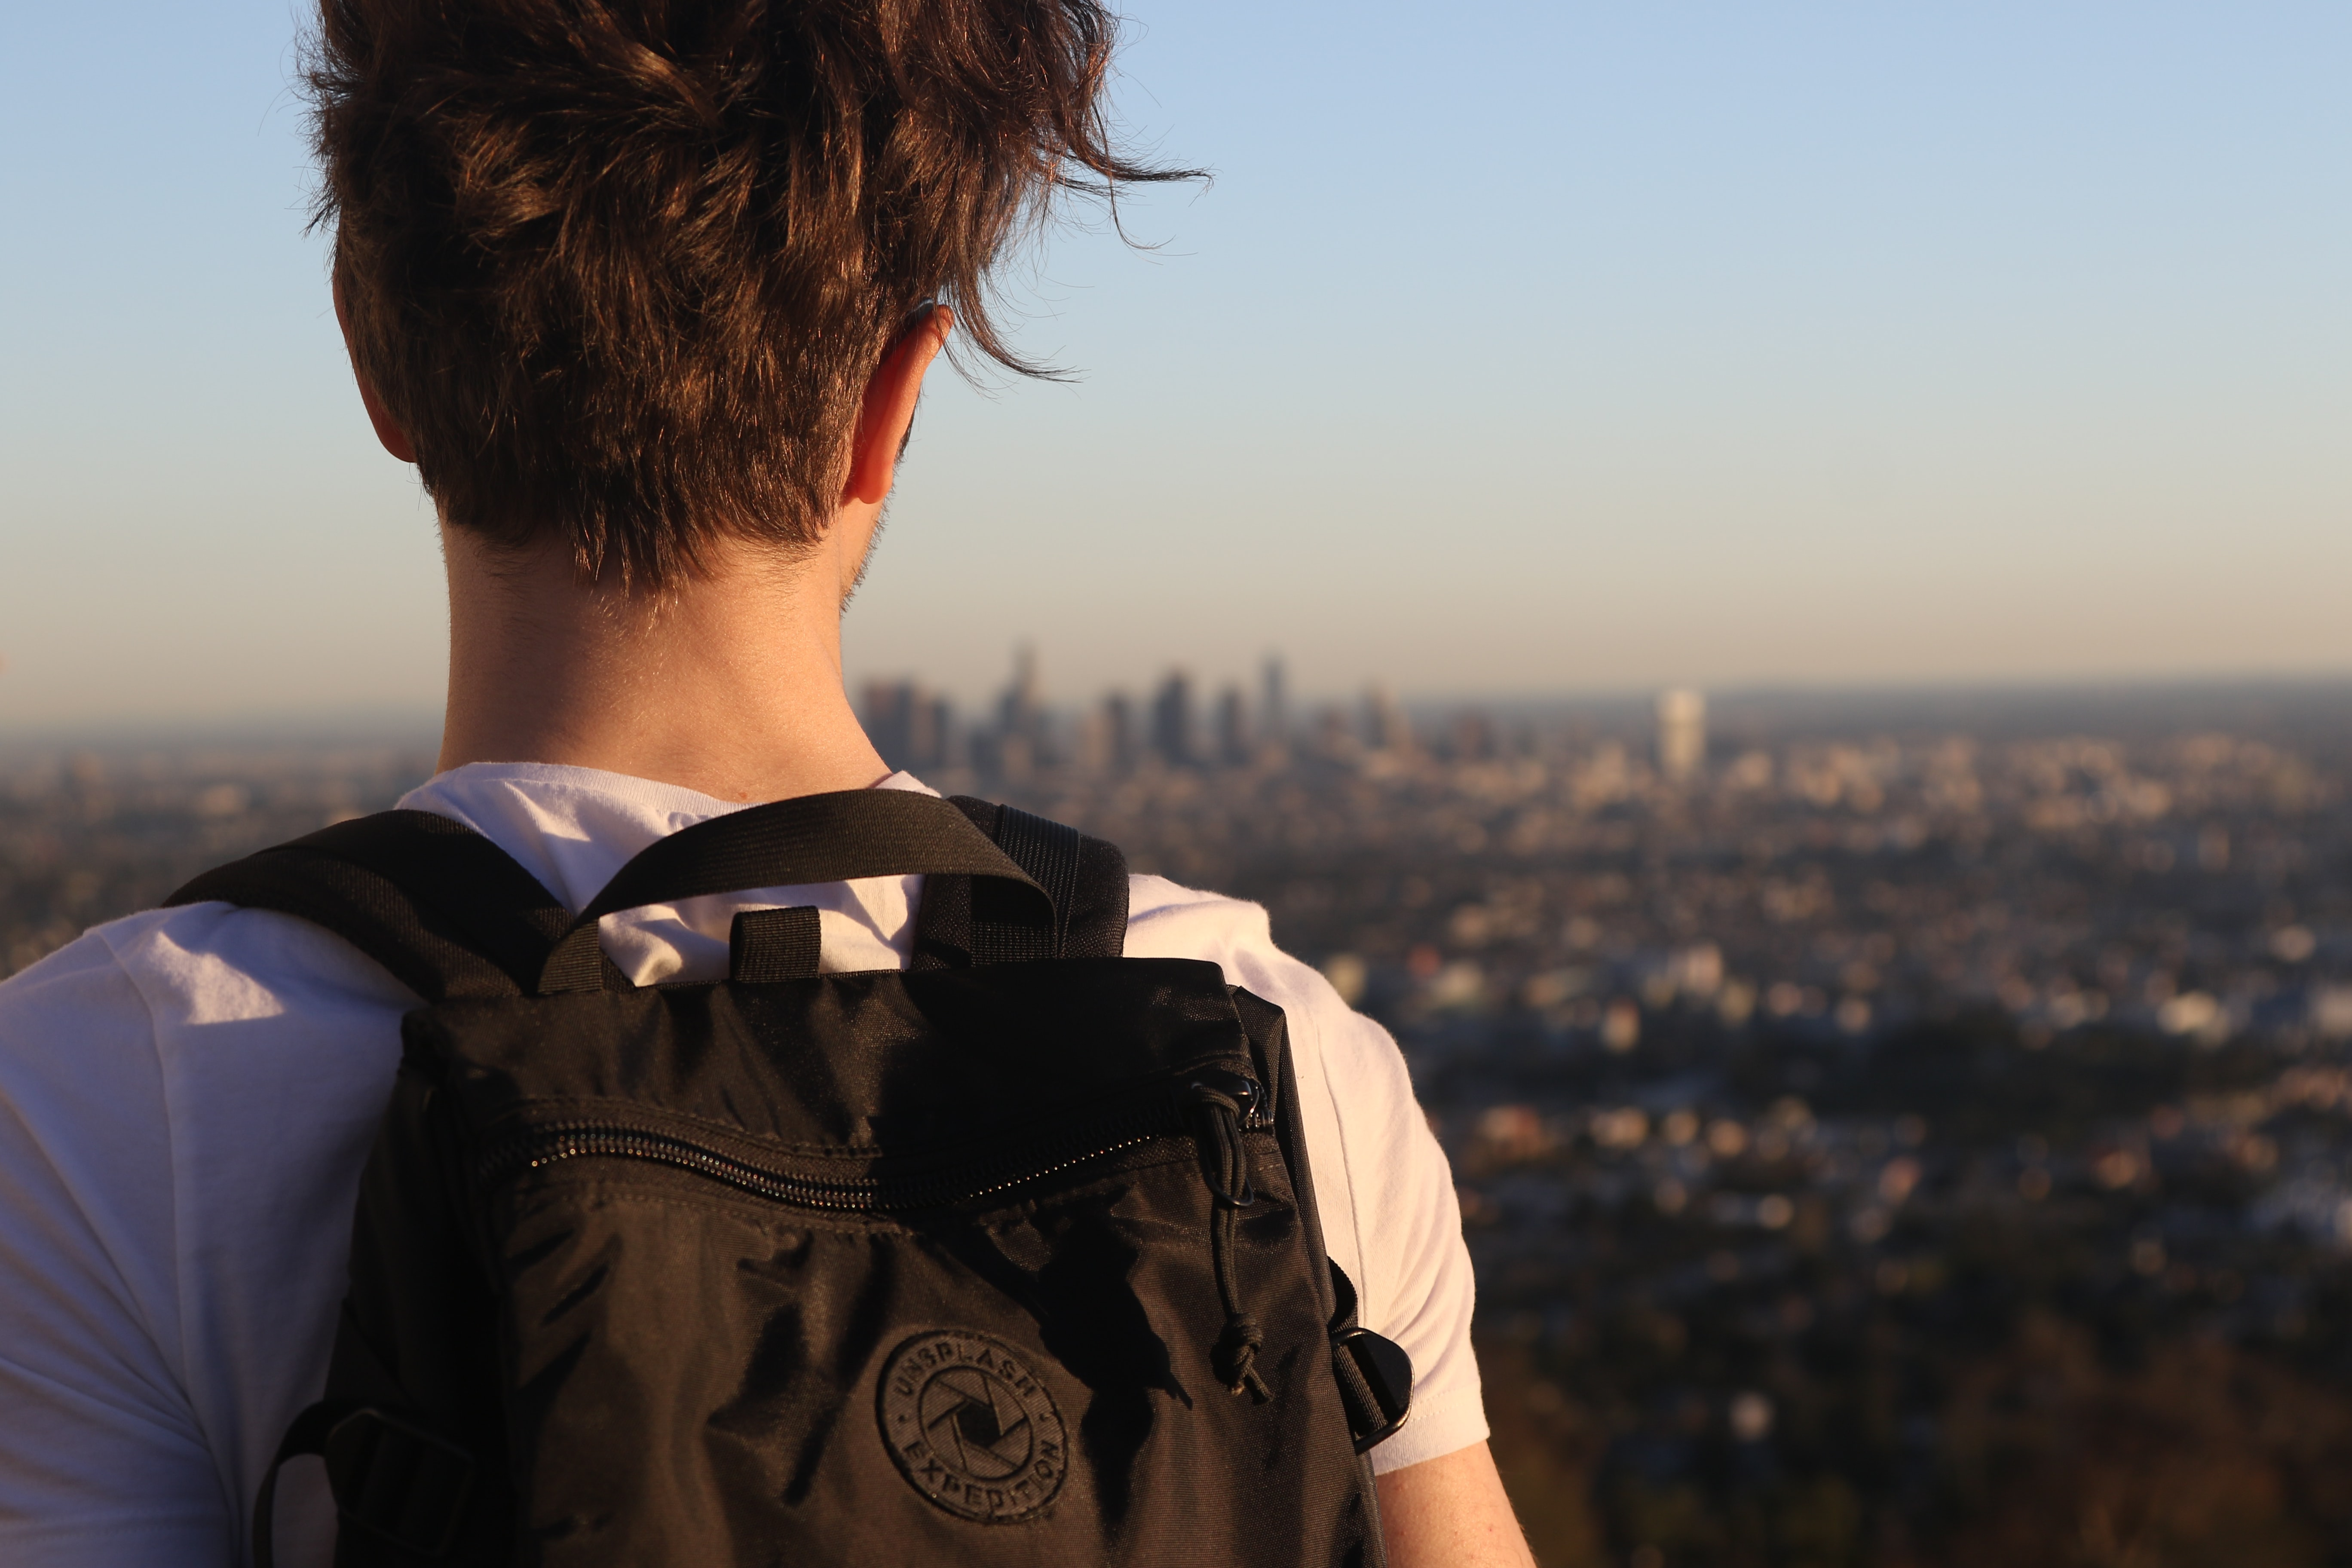 Standing behind a man wearing a backpack looking out at the Los Angeles skyline